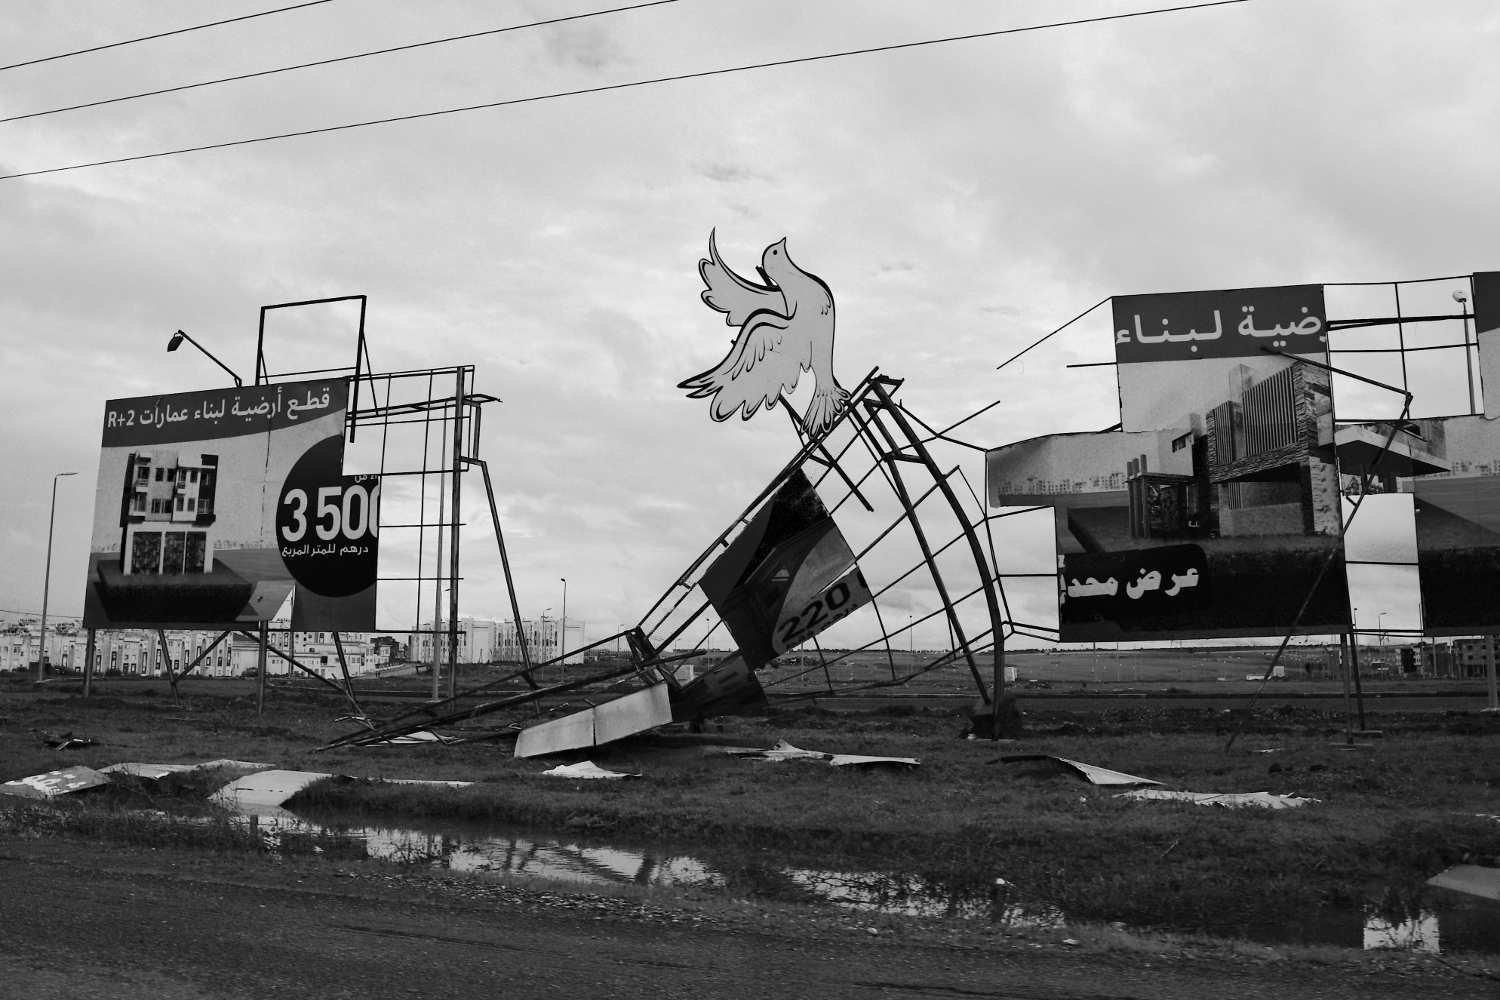 Signs and advertisements after a storm. Tips for Taking Better Pictures from a Moving Vehicle